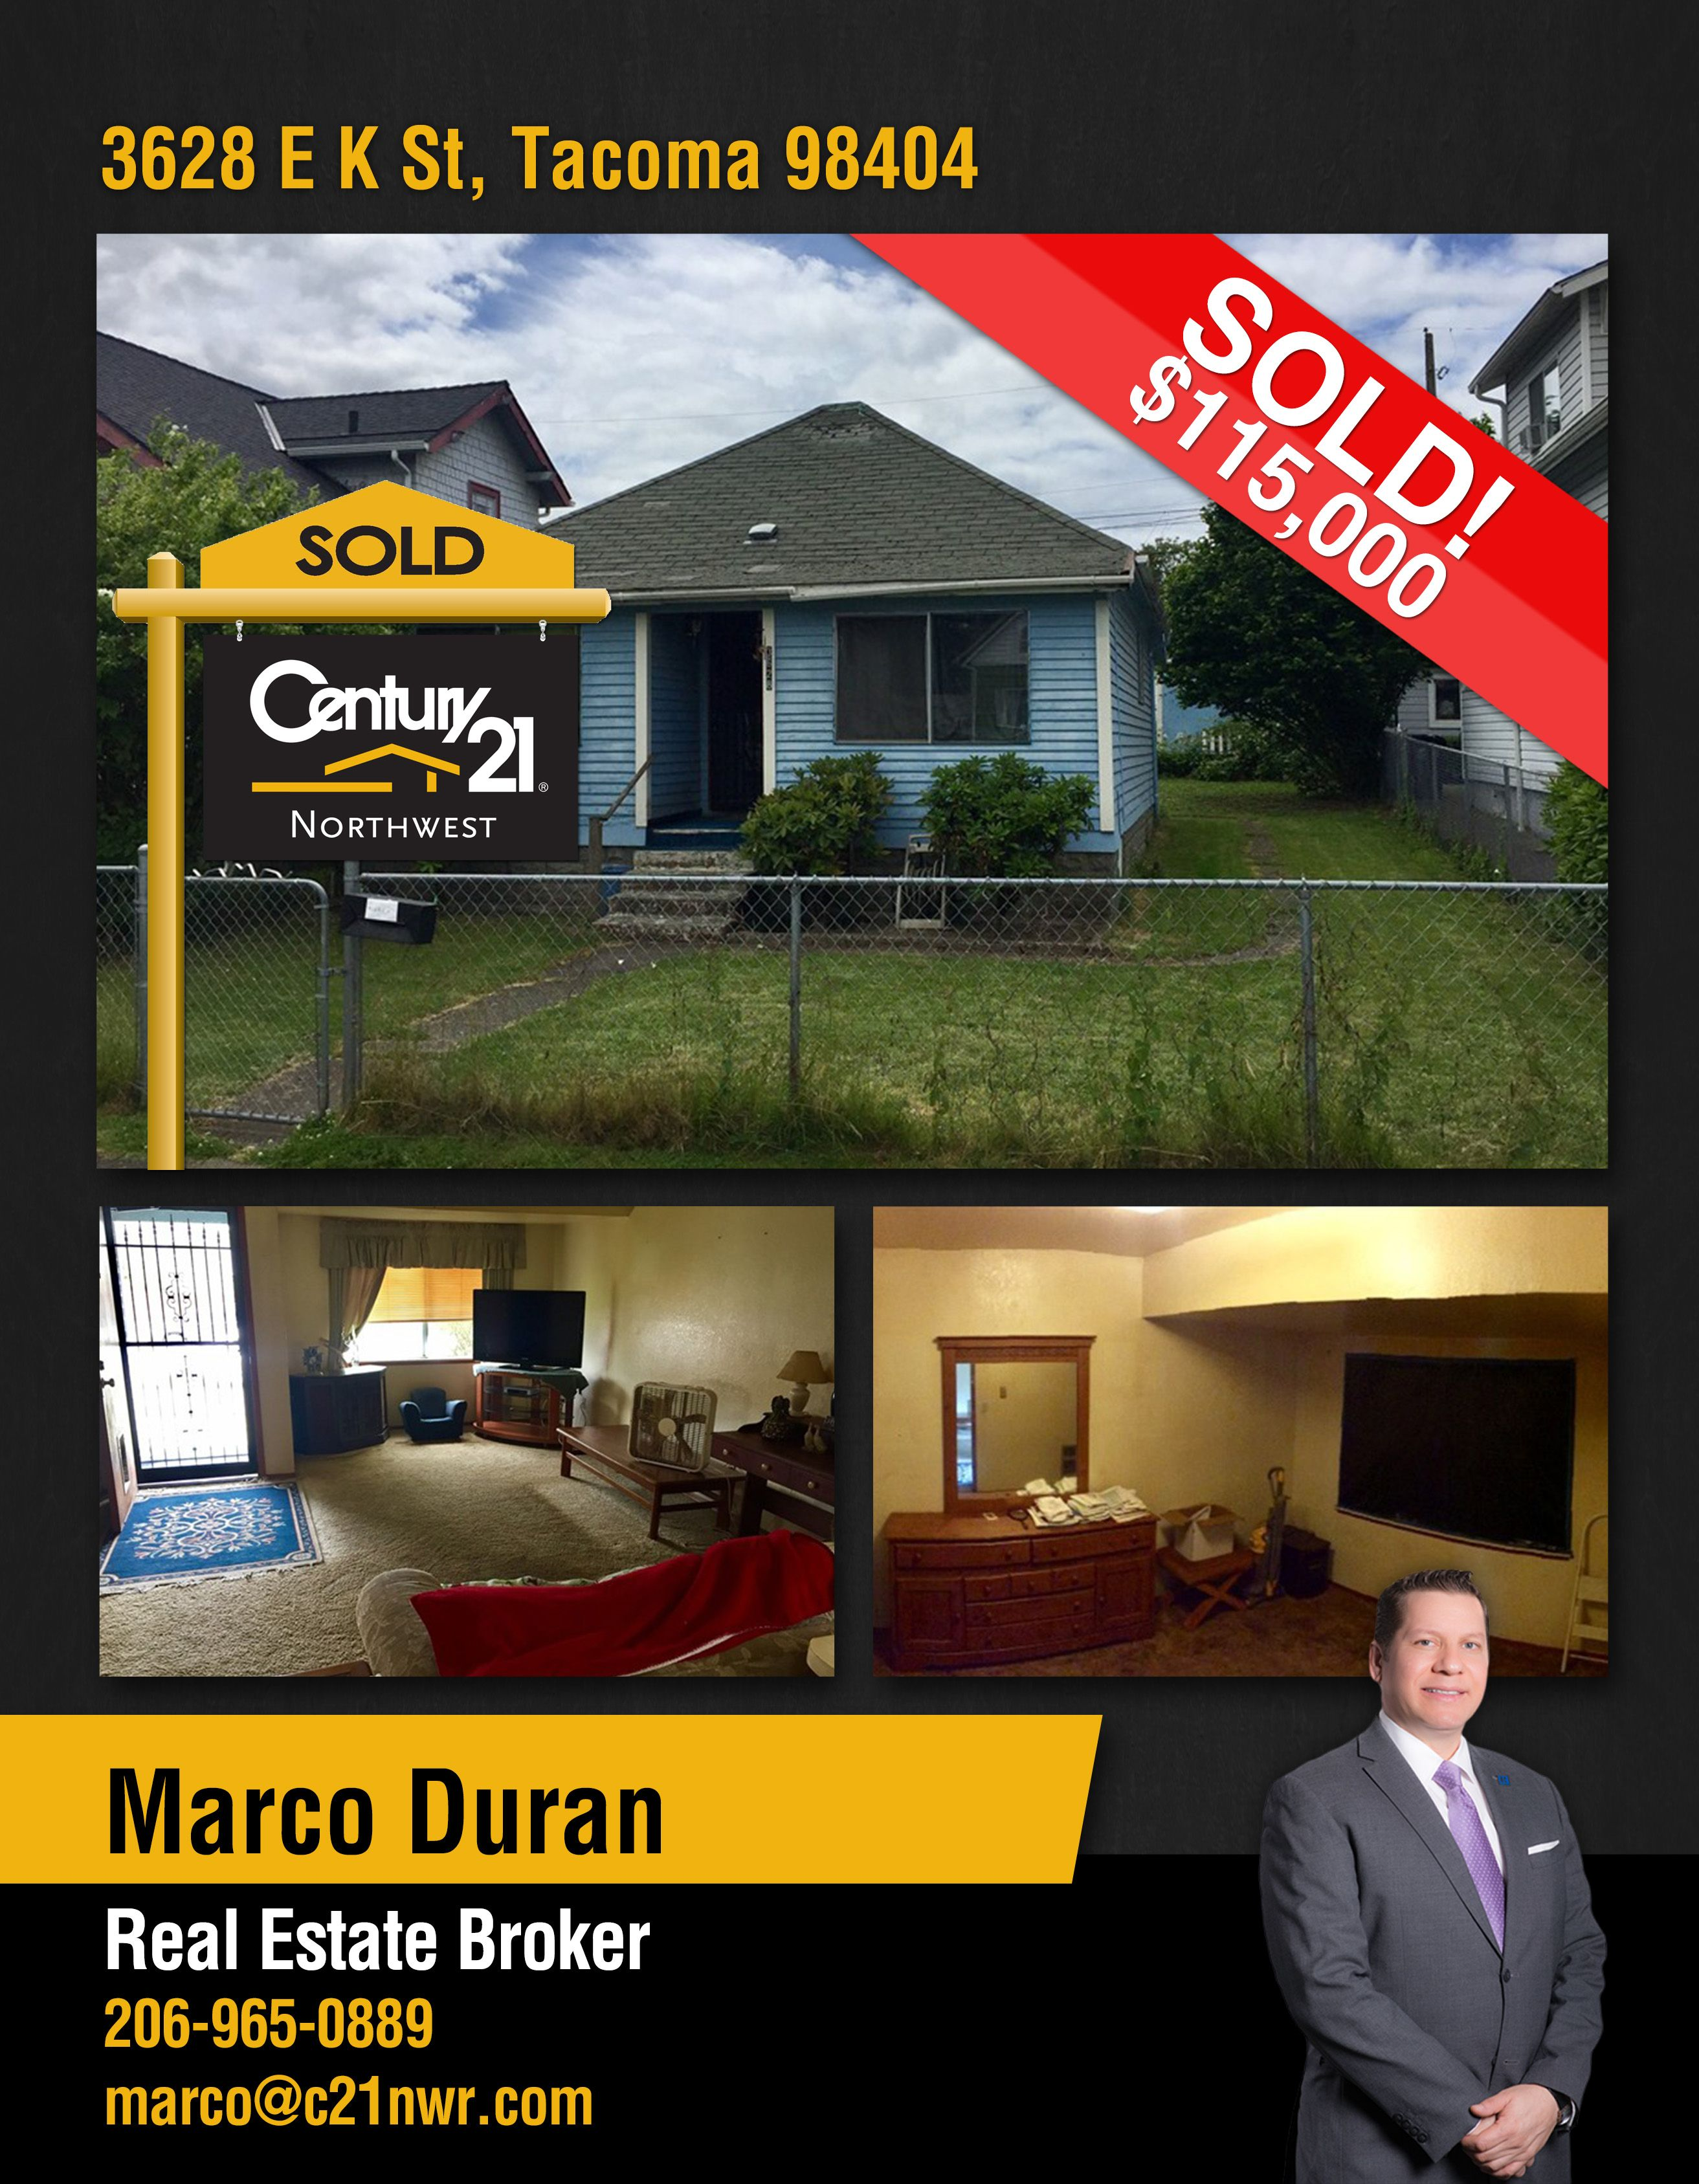 SOLD Congrats Marco Duran and to the new owners of Wonderful Home in ...